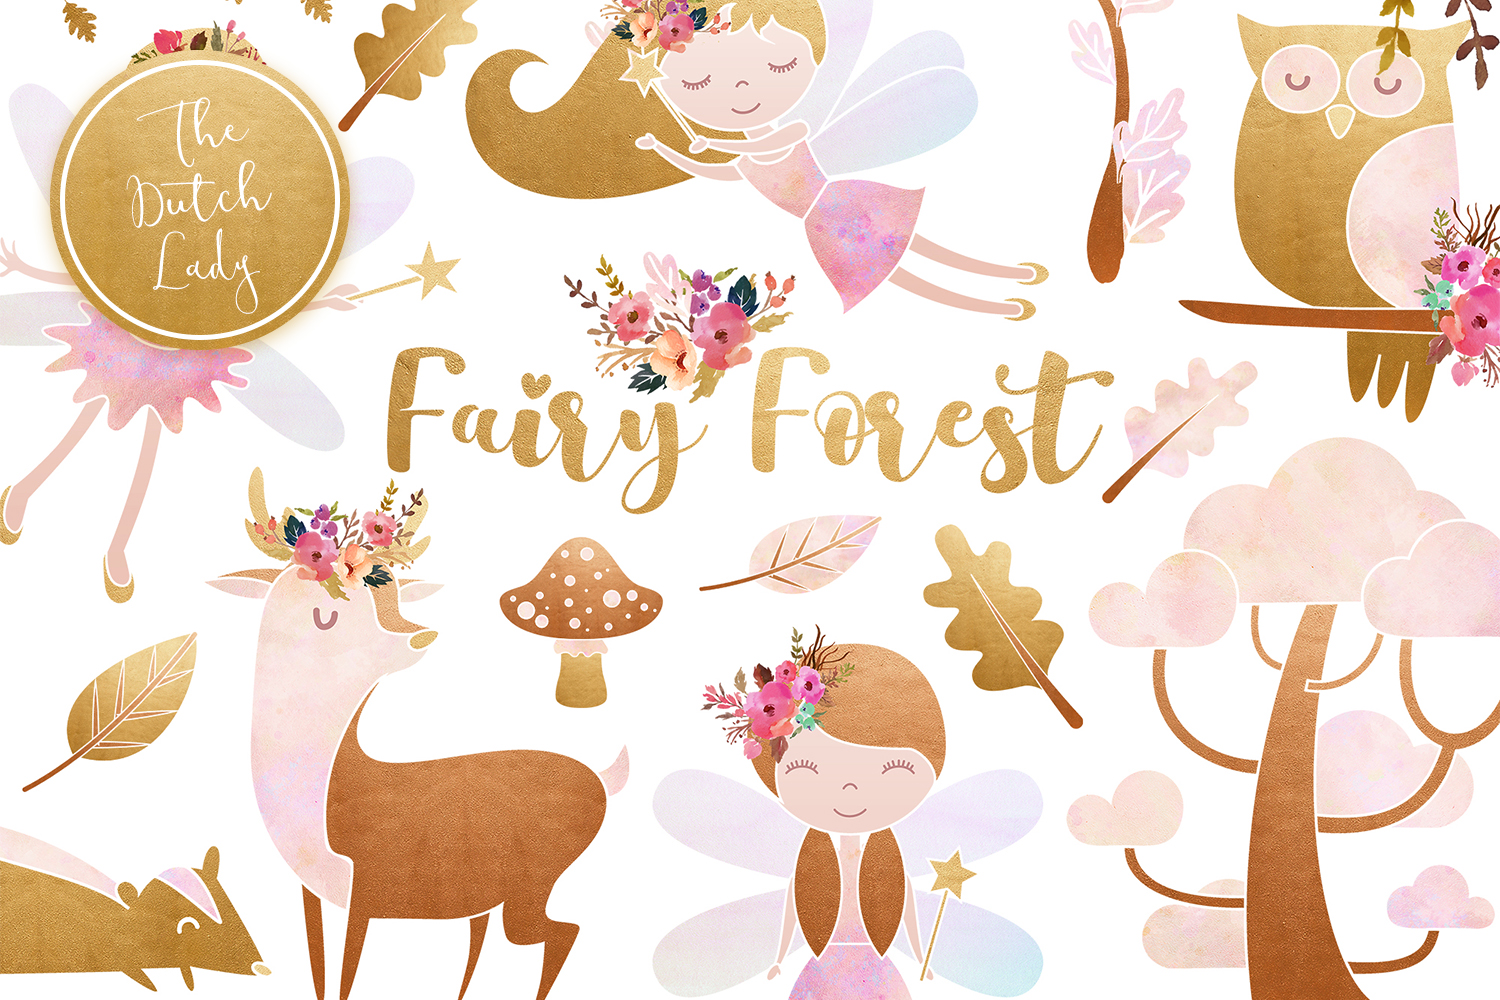 Download Free Enchanted Fairy Forest Clipart Set Graphic By Daphnepopuliers for Cricut Explore, Silhouette and other cutting machines.